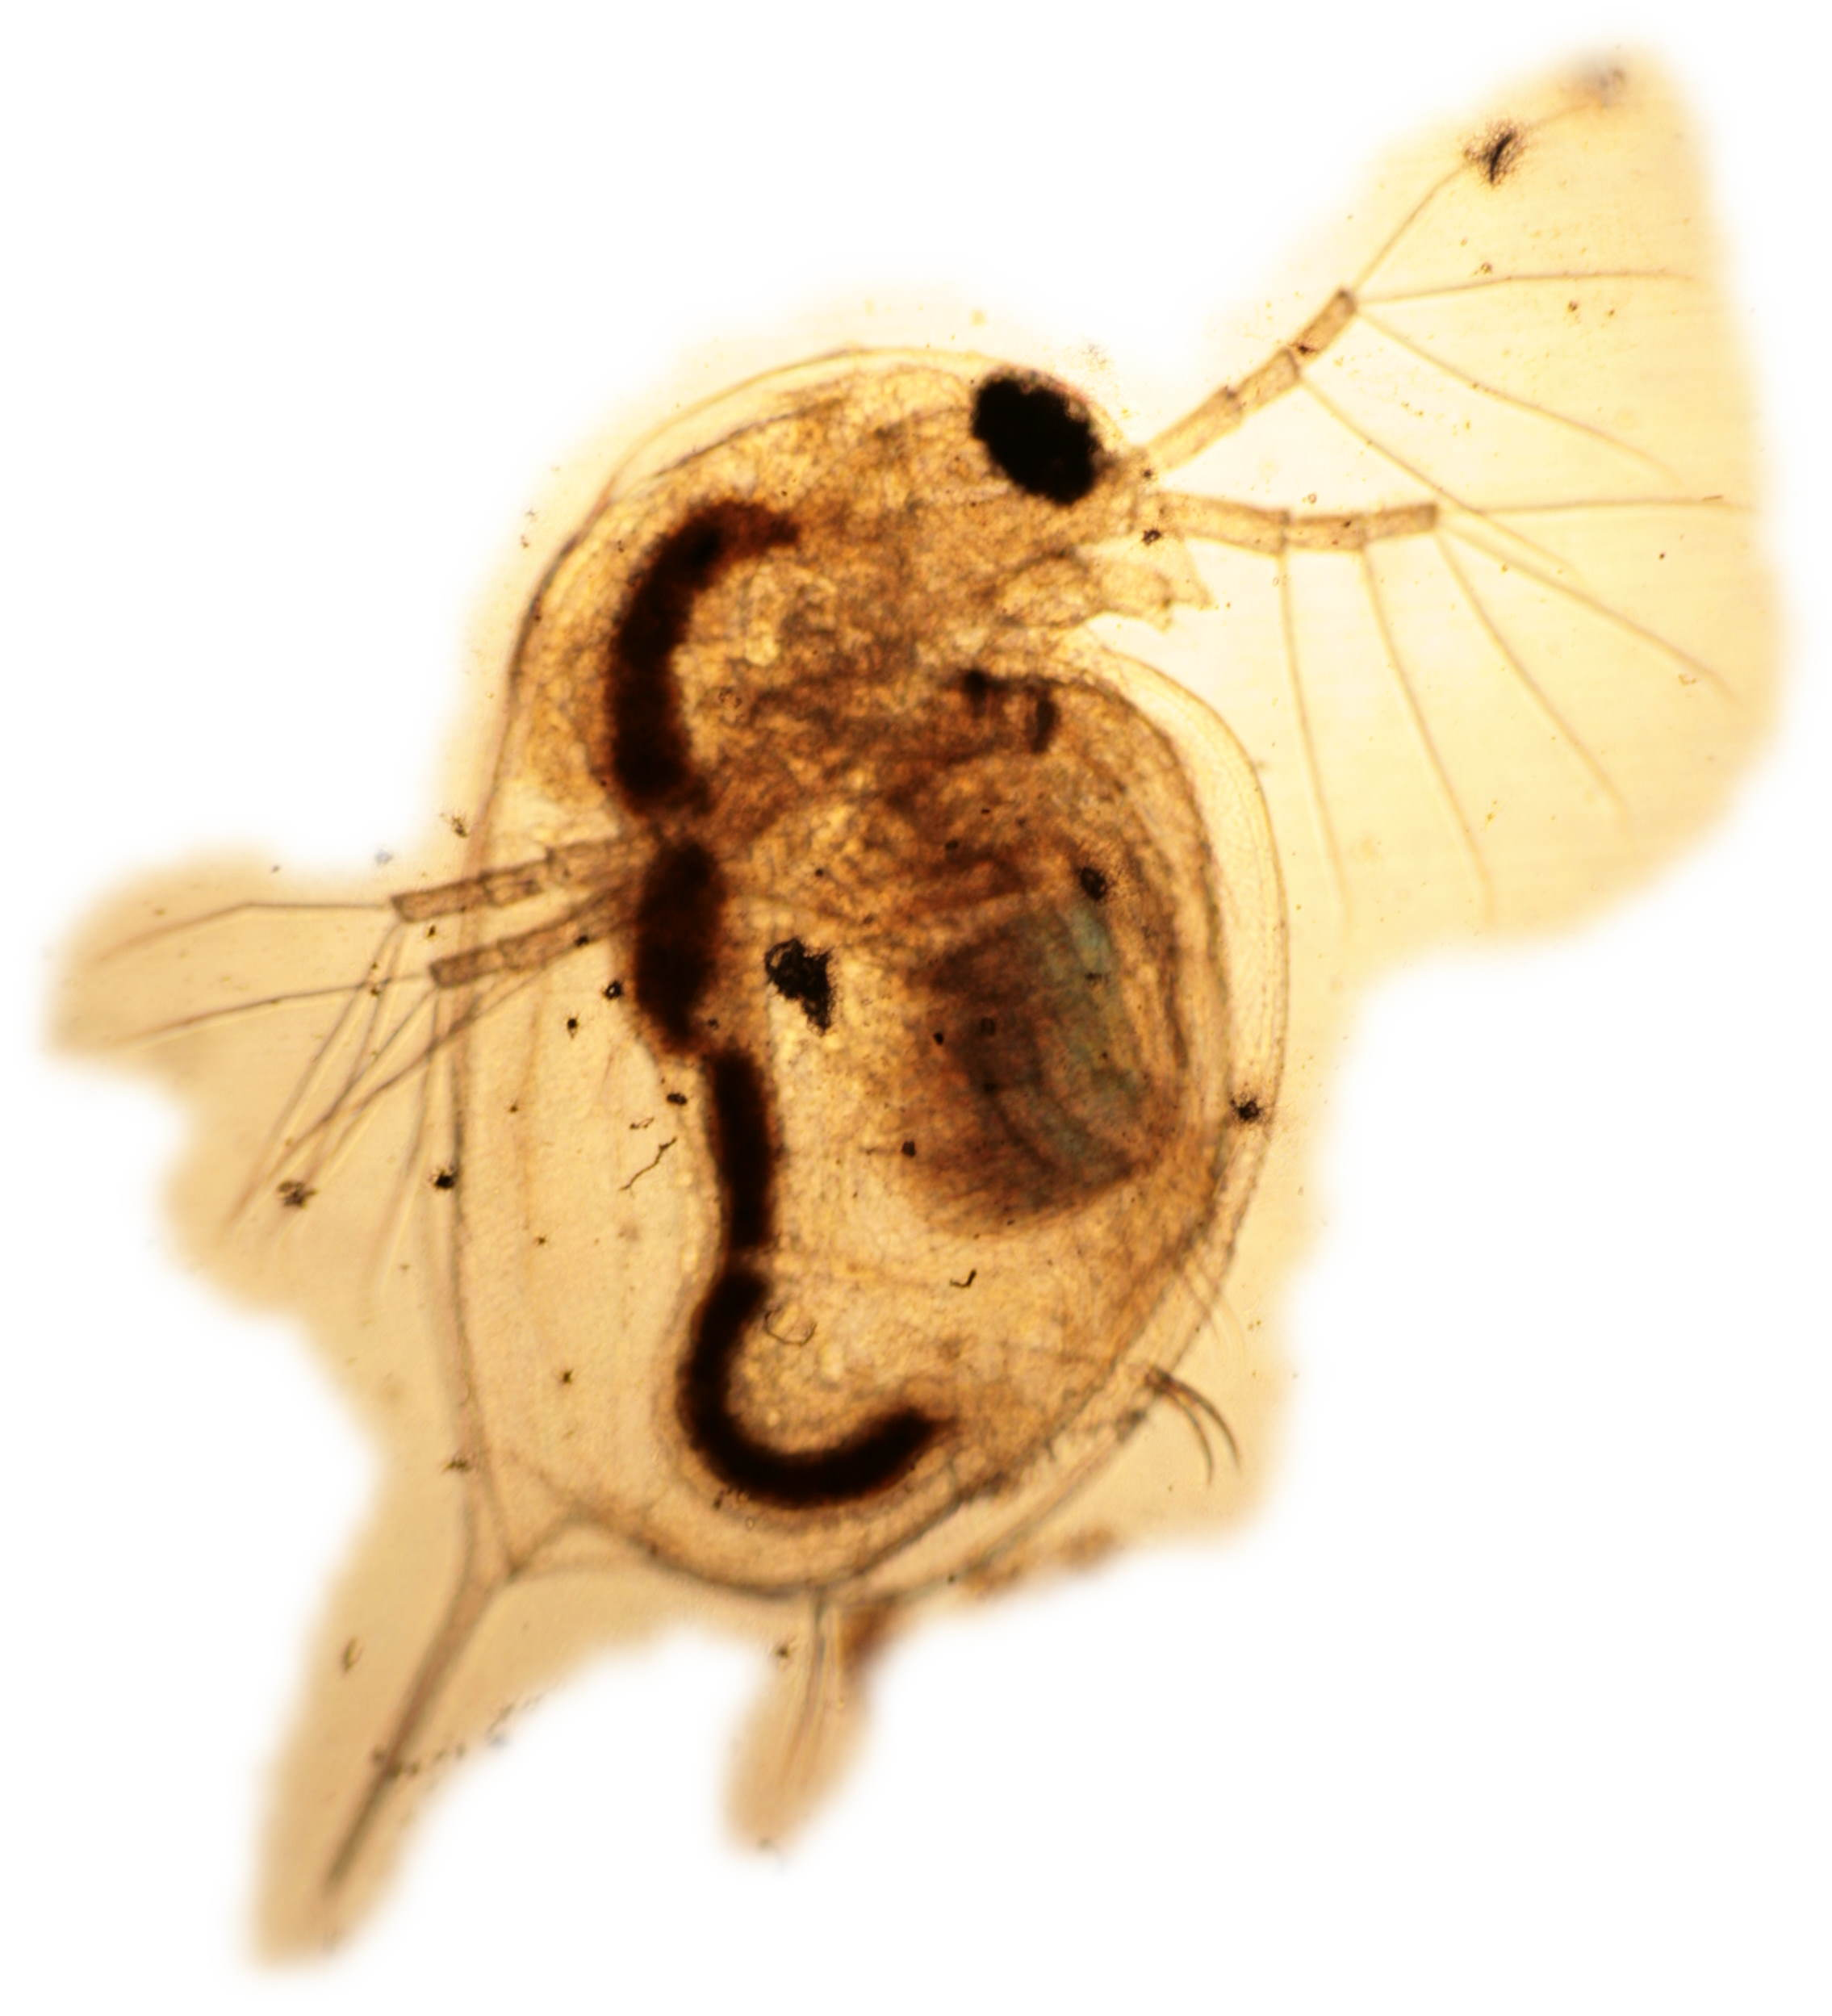 Focusing on the top of a Daphnia